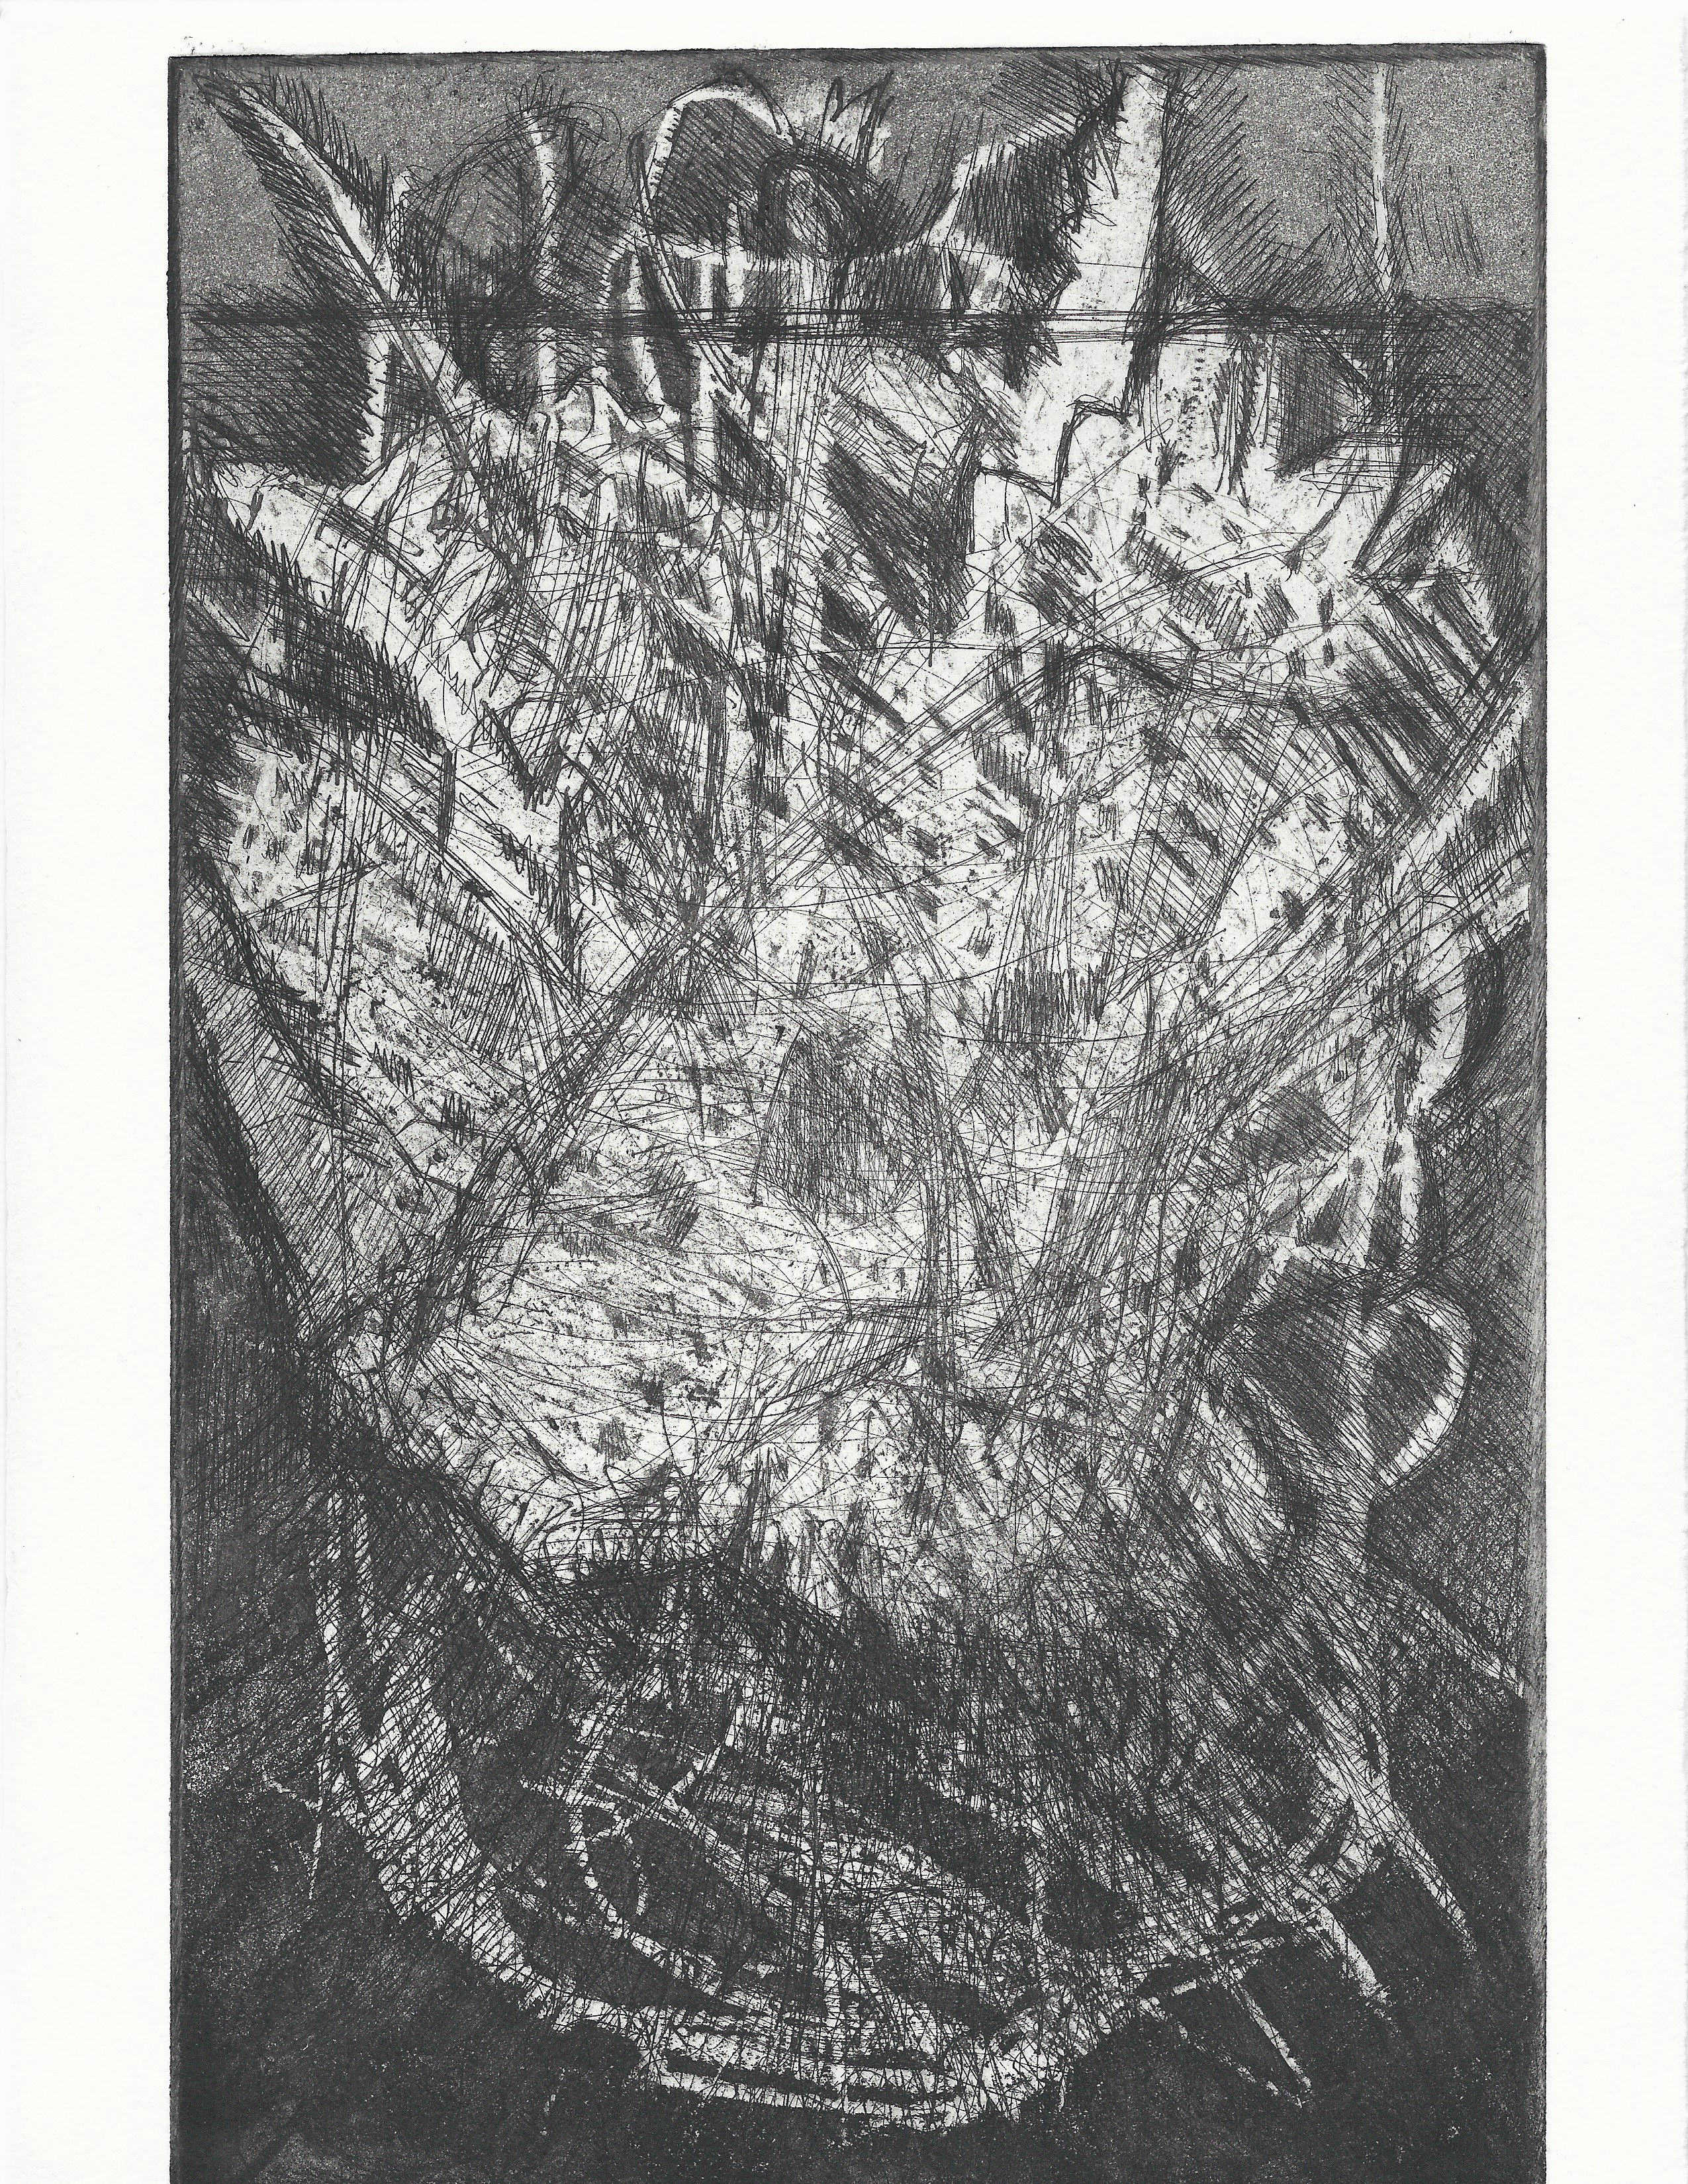 Micah Zavacky | ROOT ROT: FLOODED YET FLOATING | intaglio | 11x7 | 2016